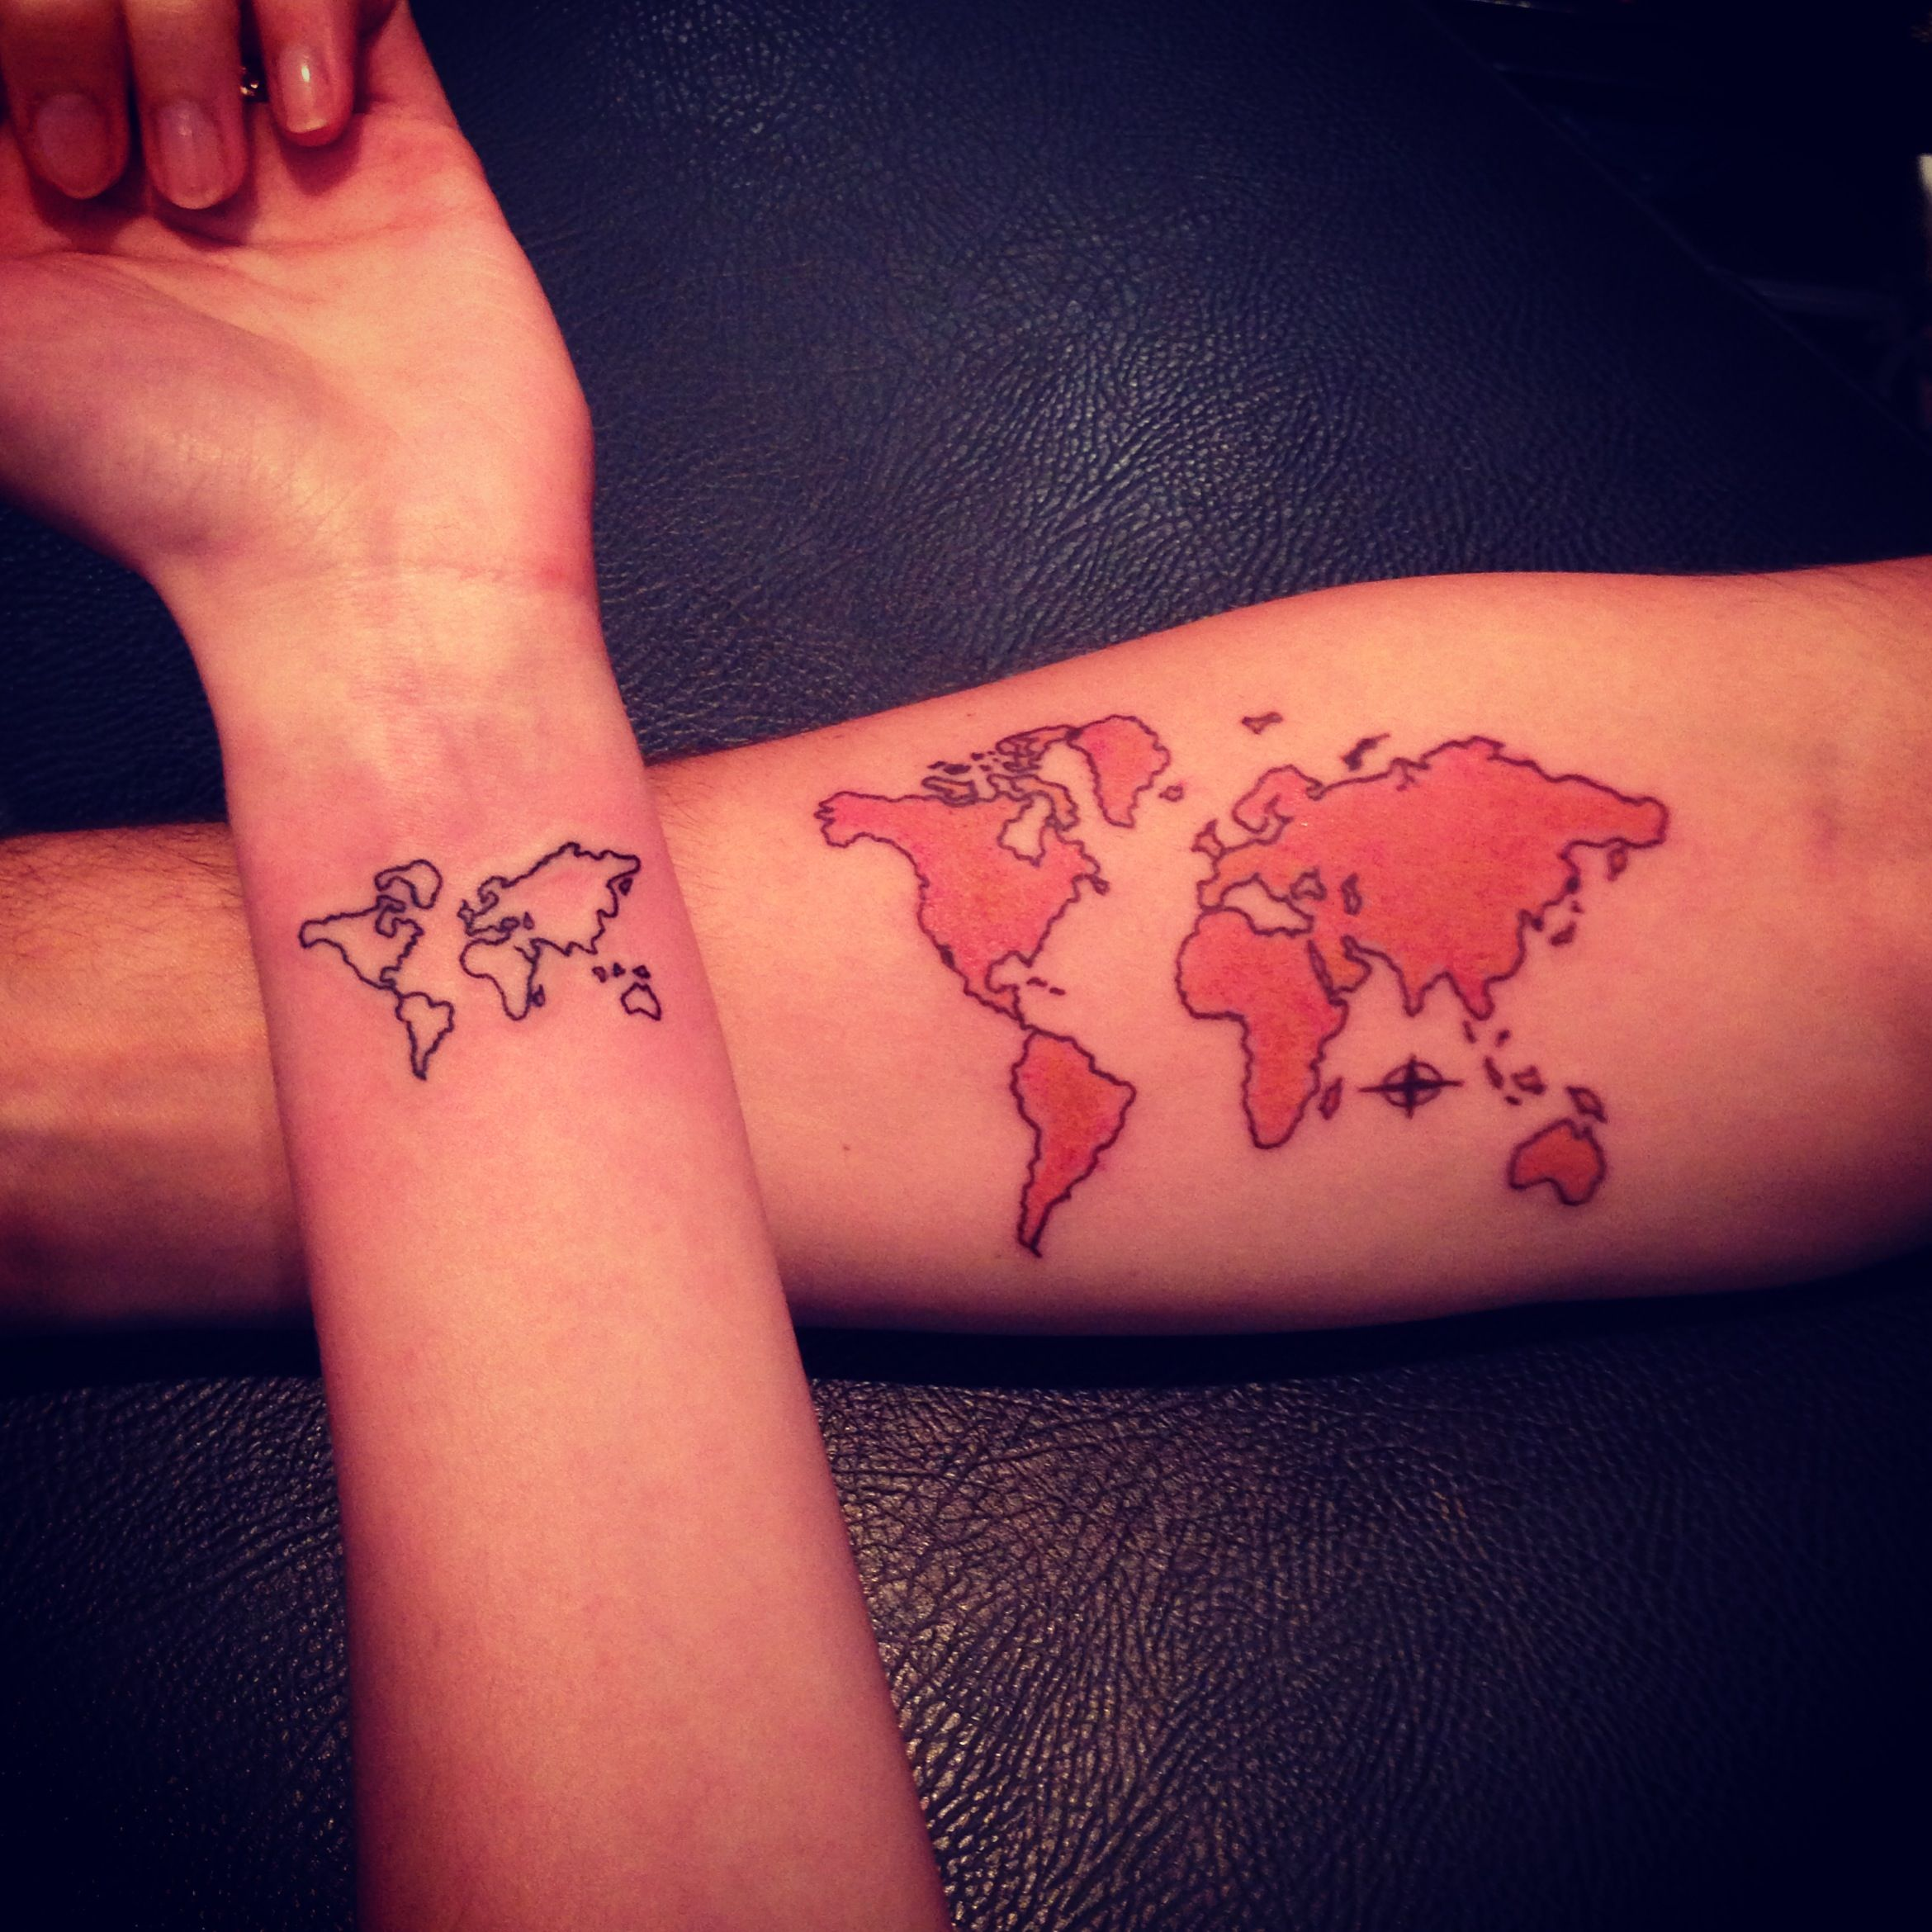 tattoo of the world map World Map Tattoo I Only Like The Tiny One Map Tattoos Couple